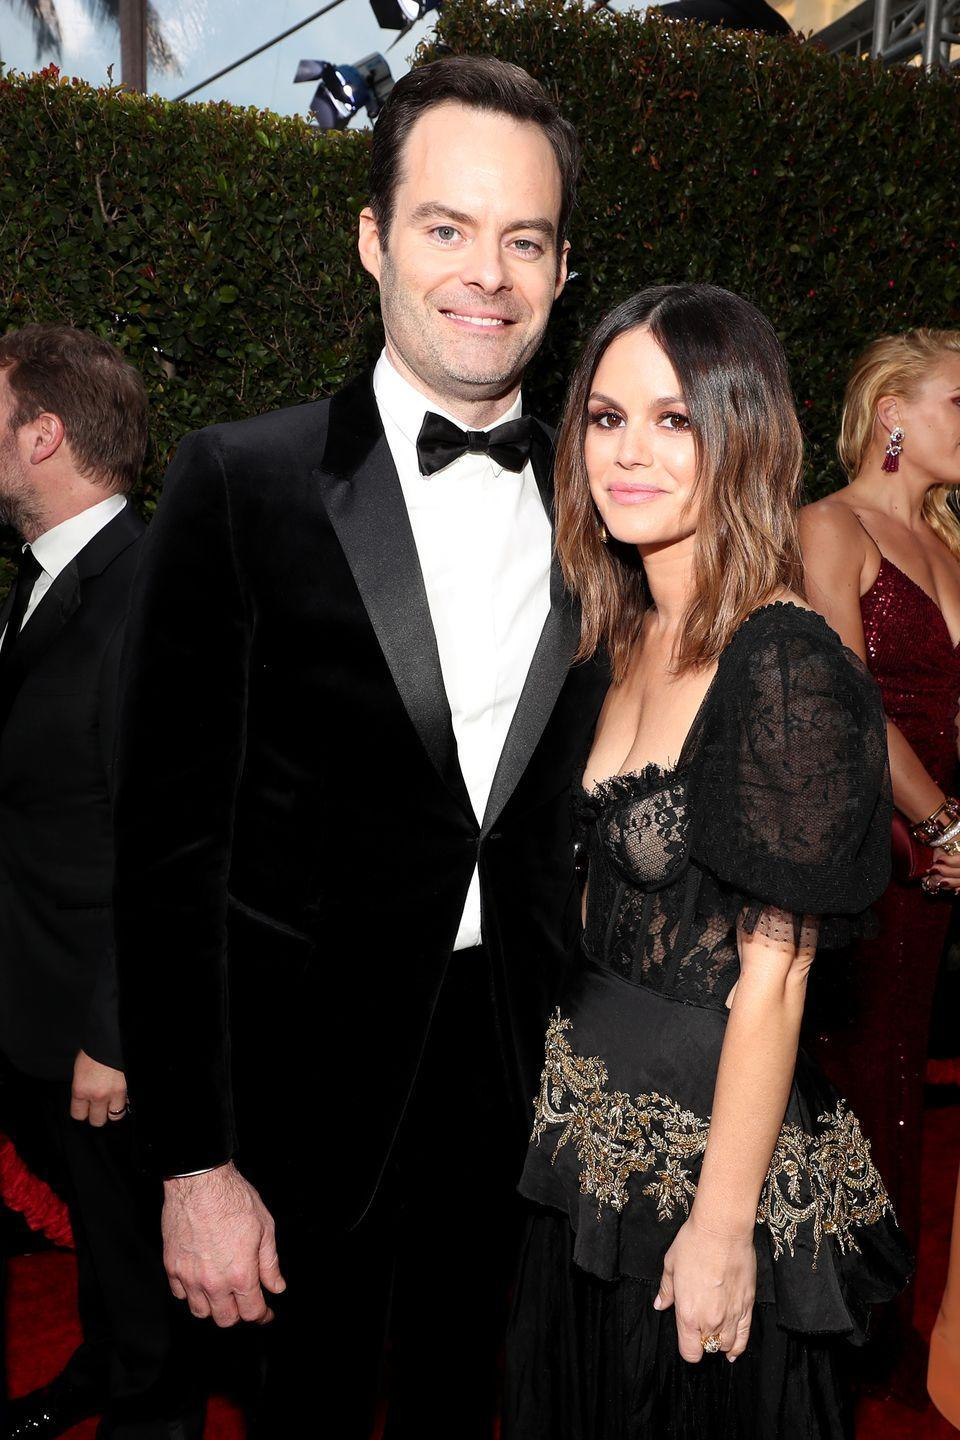 """<p>Rachel and Bill shocked everyone when they attended this year's Golden Globe Awards together and confirmed their relationship, but the pair wasn't meant to last—six months later, <a href=""""https://people.com/tv/bill-hader-and-rachel-bilson-split-source/"""" rel=""""nofollow noopener"""" target=""""_blank"""" data-ylk=""""slk:People"""" class=""""link rapid-noclick-resp""""><em>People</em> </a>confirmed they """"amicably split."""" Ho hum.</p>"""